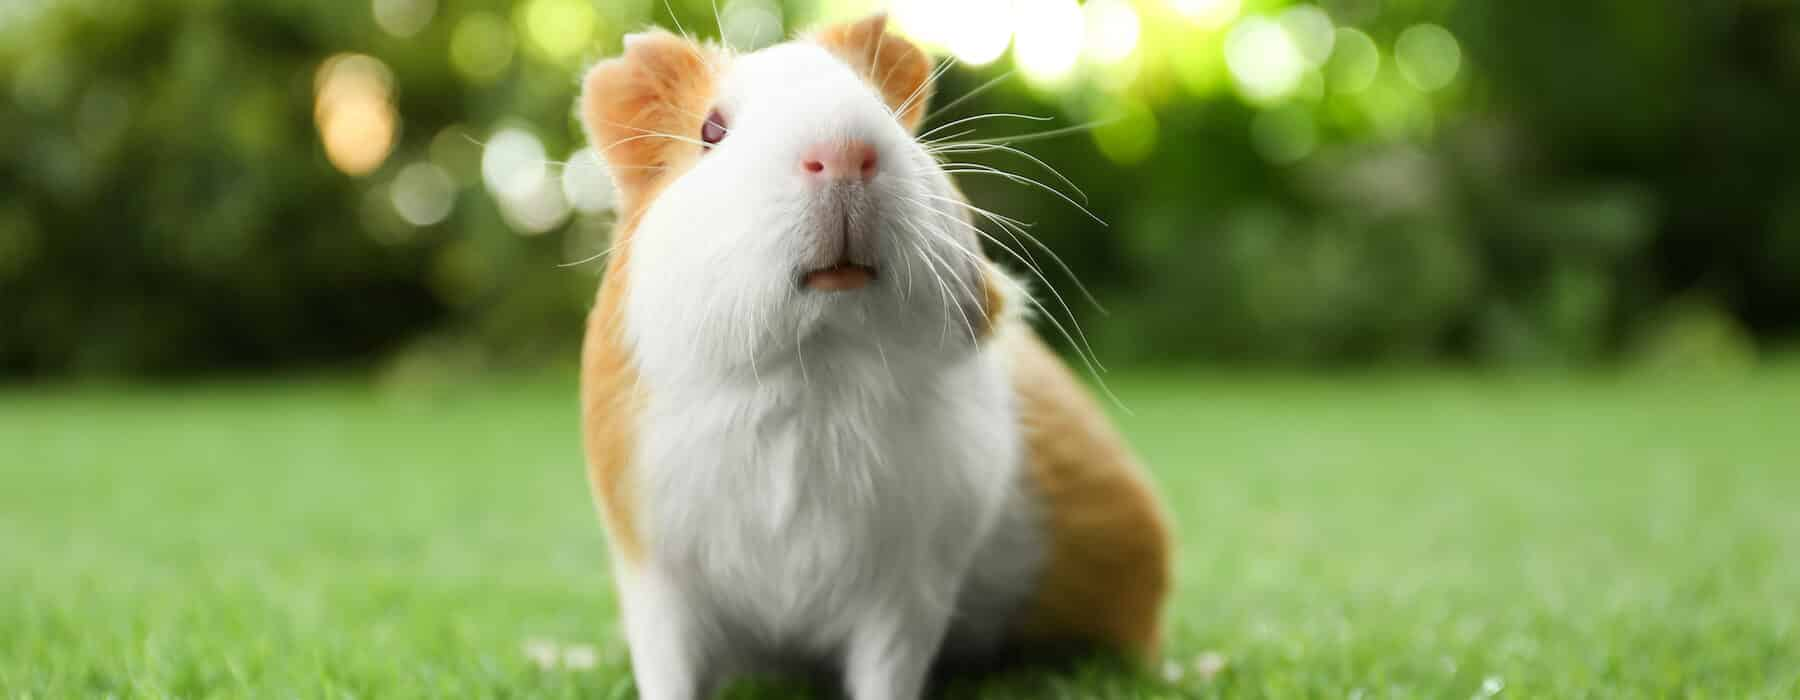 Inquisitive white and ginger guinea pig sitting on the lawn